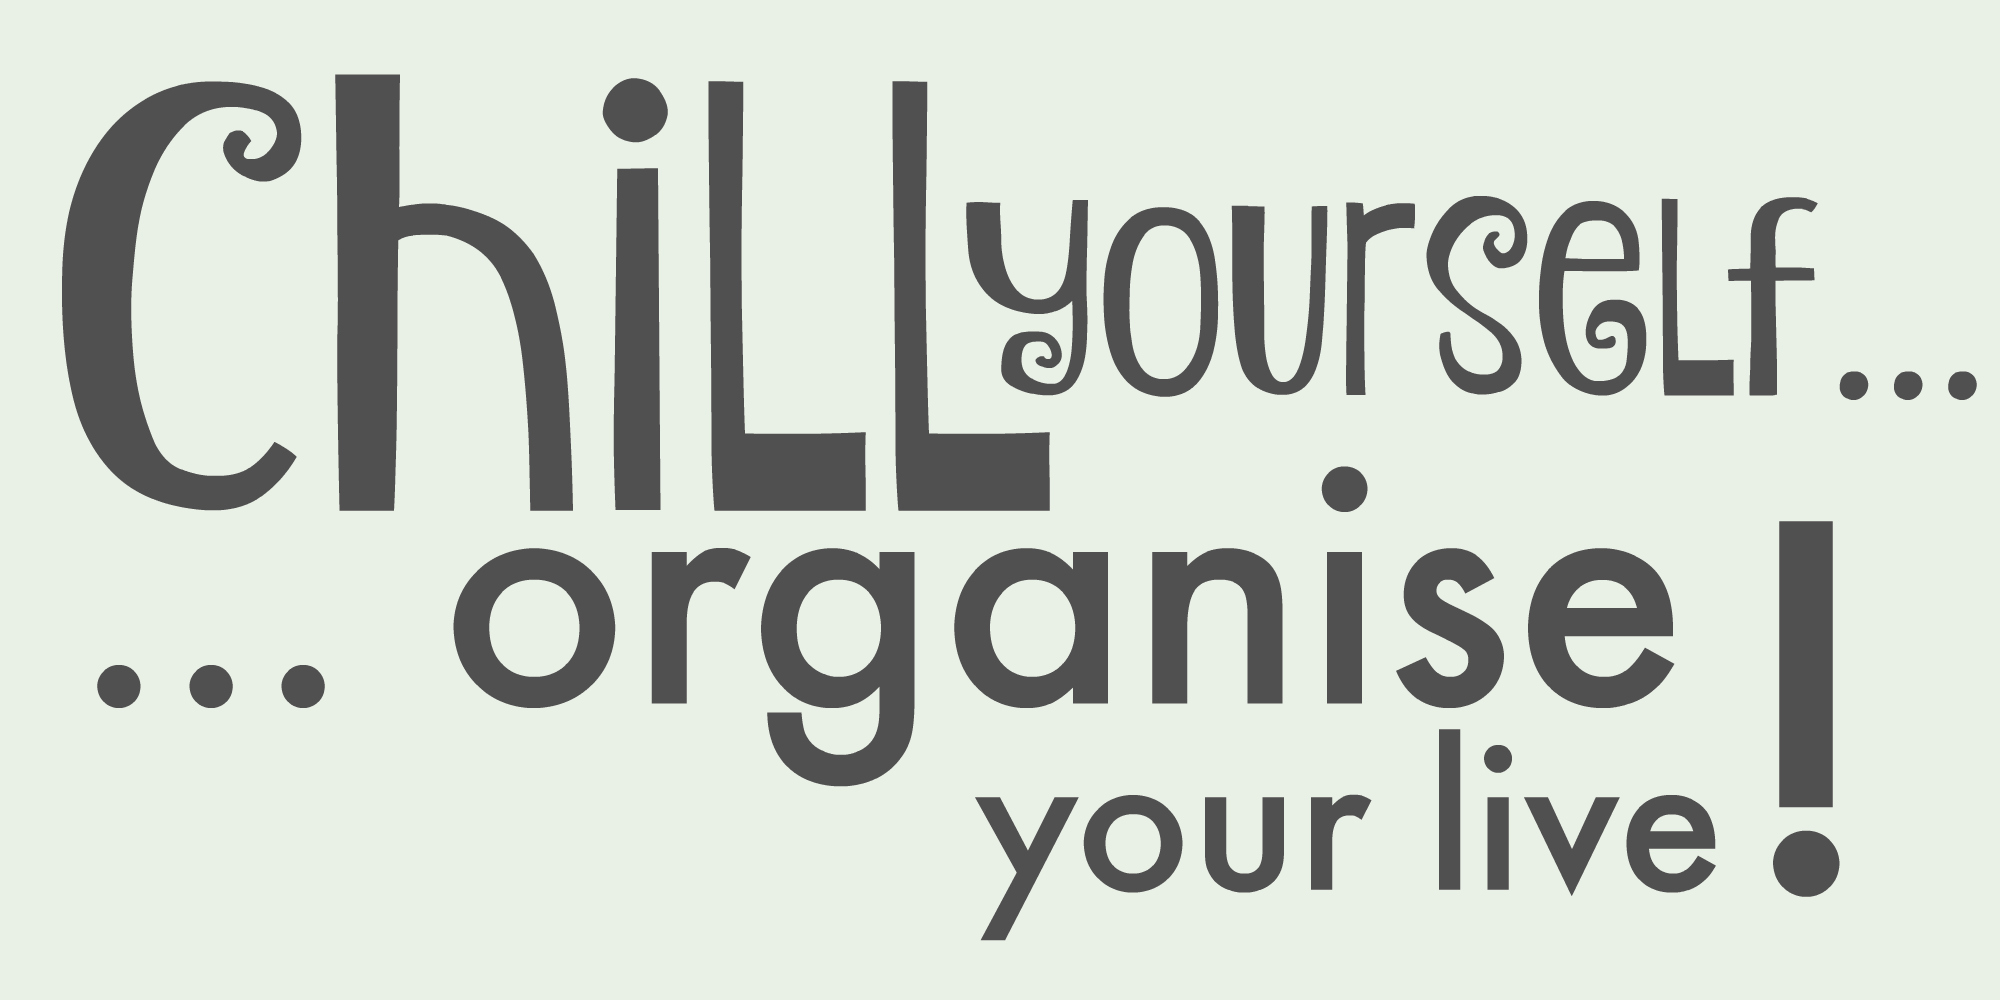 Chill yourself - organize your live!